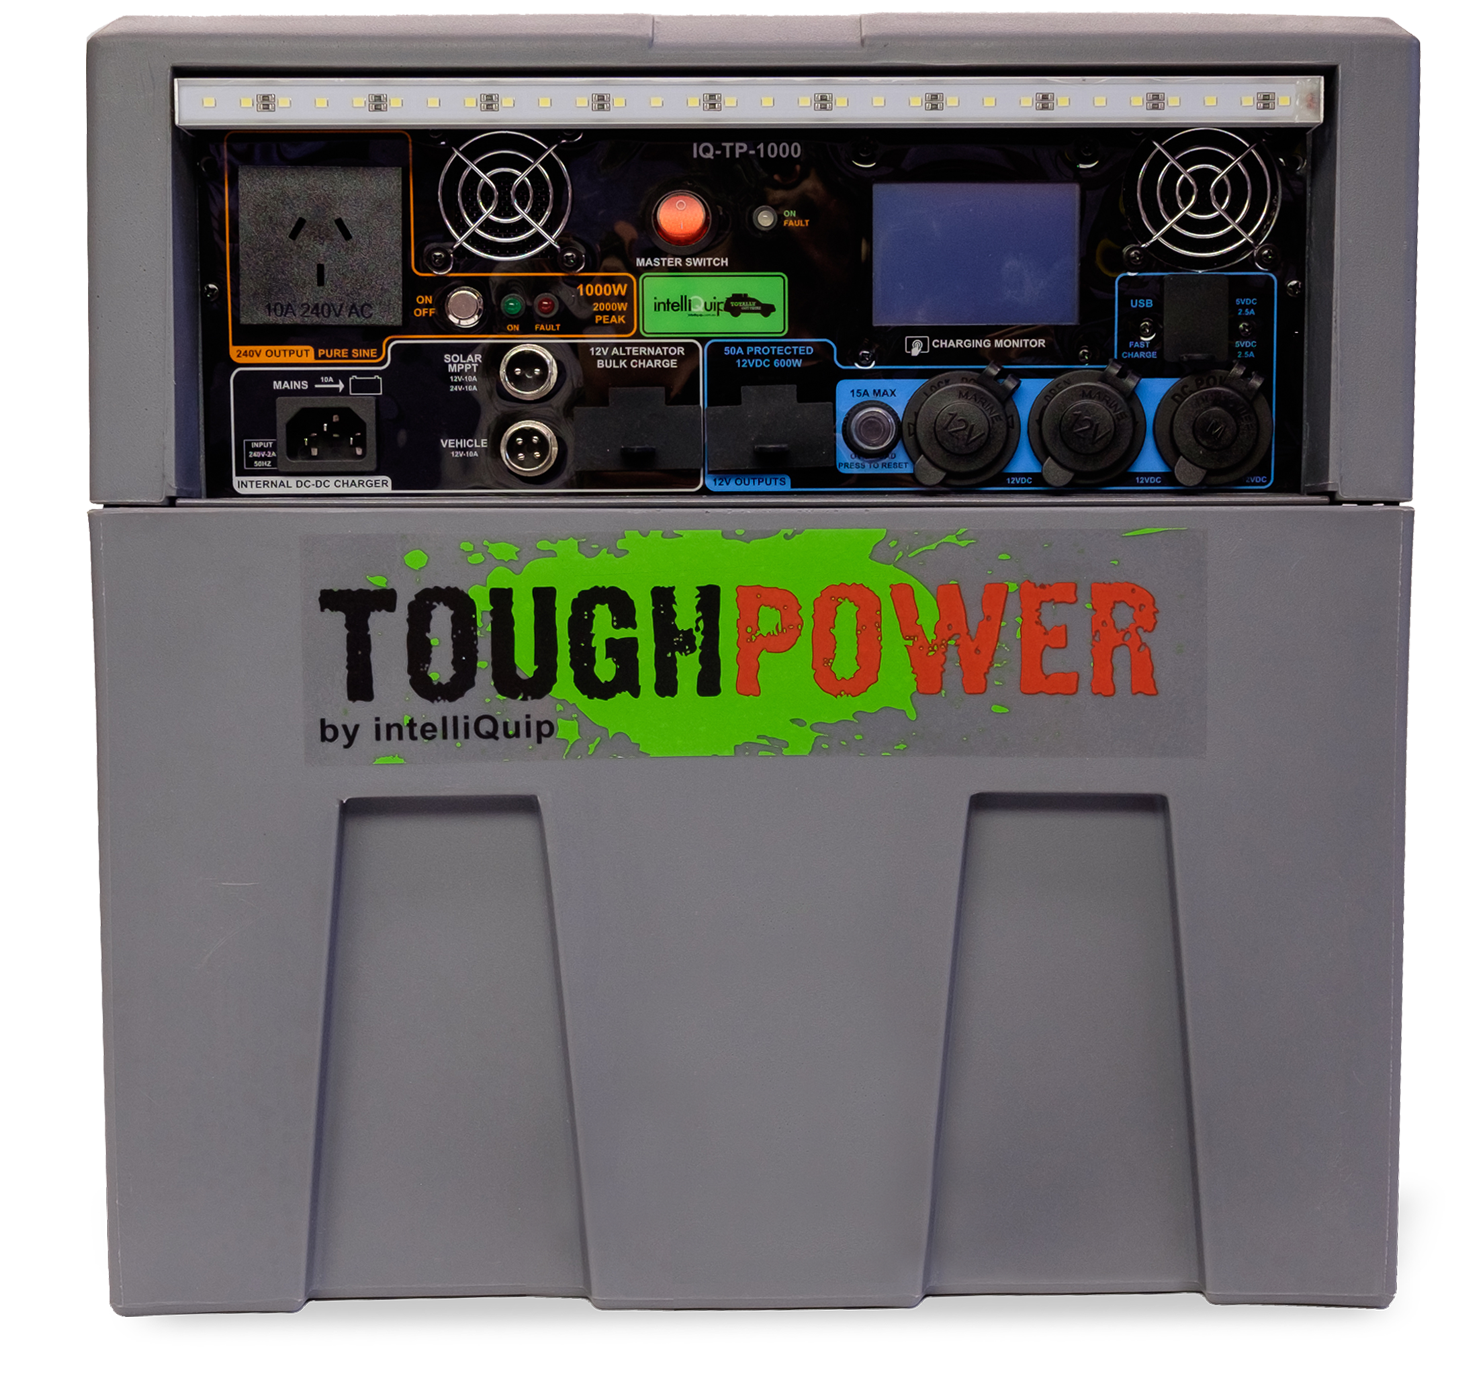 Toughpower and coffee pod machine